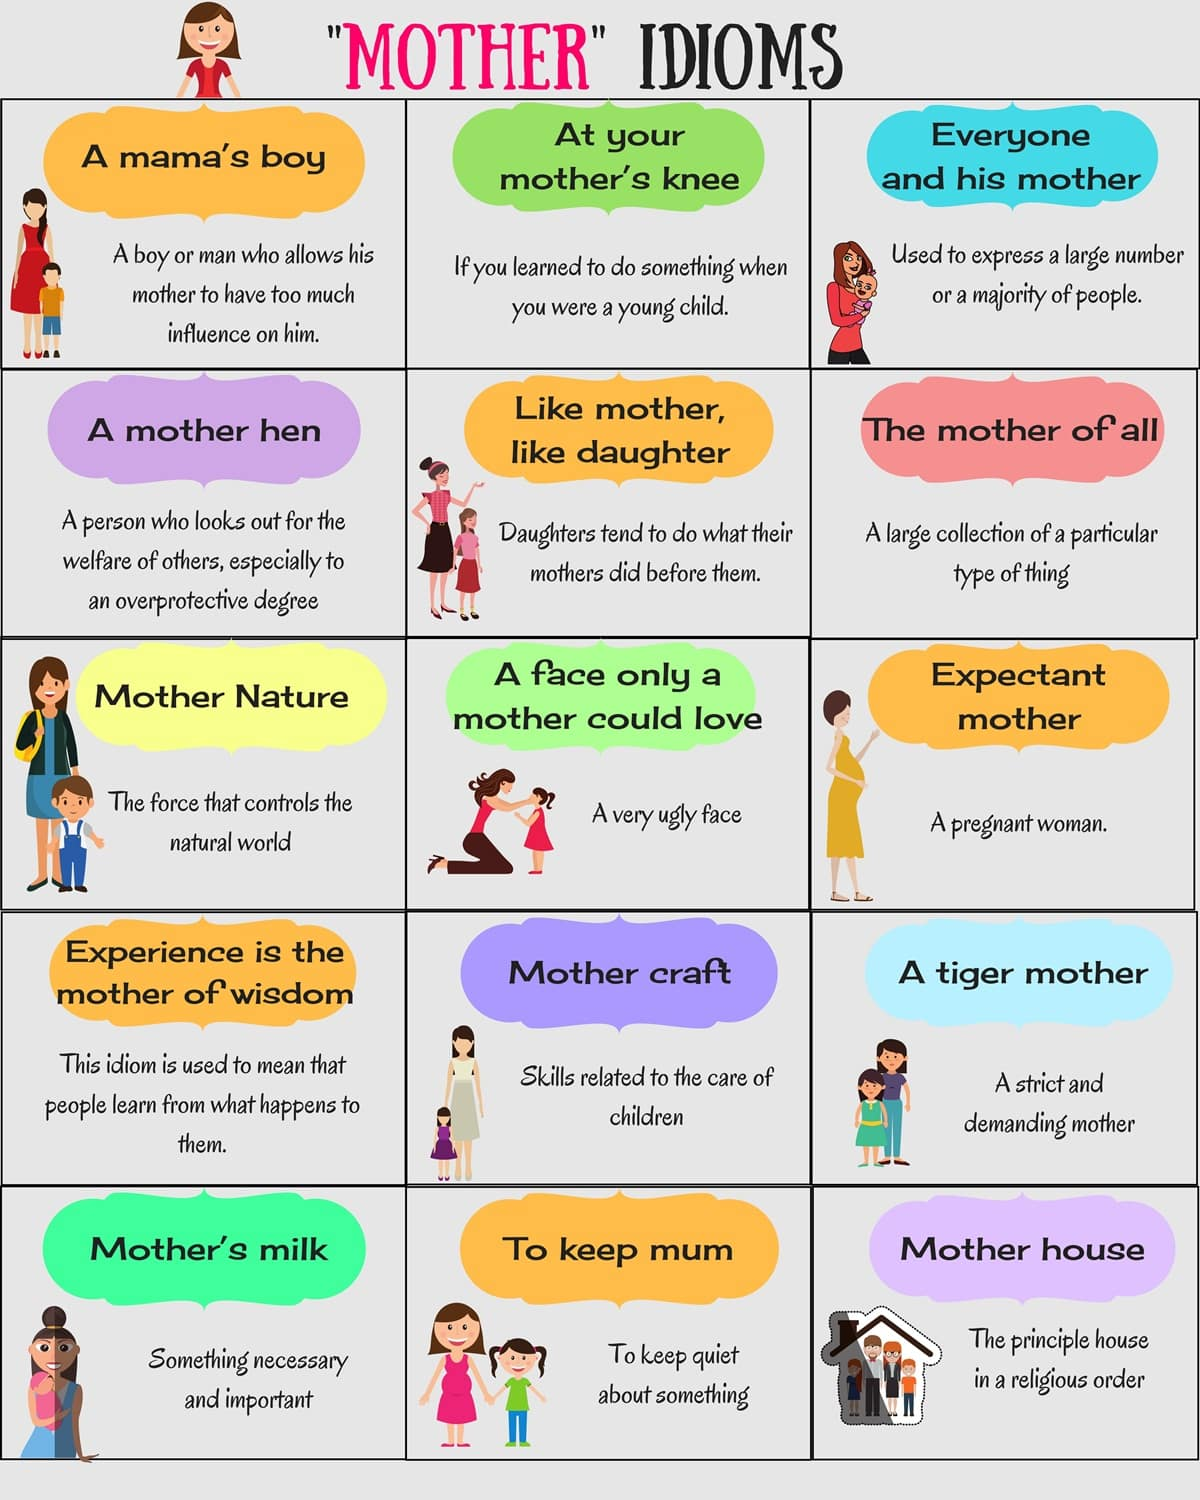 Idiomatic Expressions related to the Word MOTHER